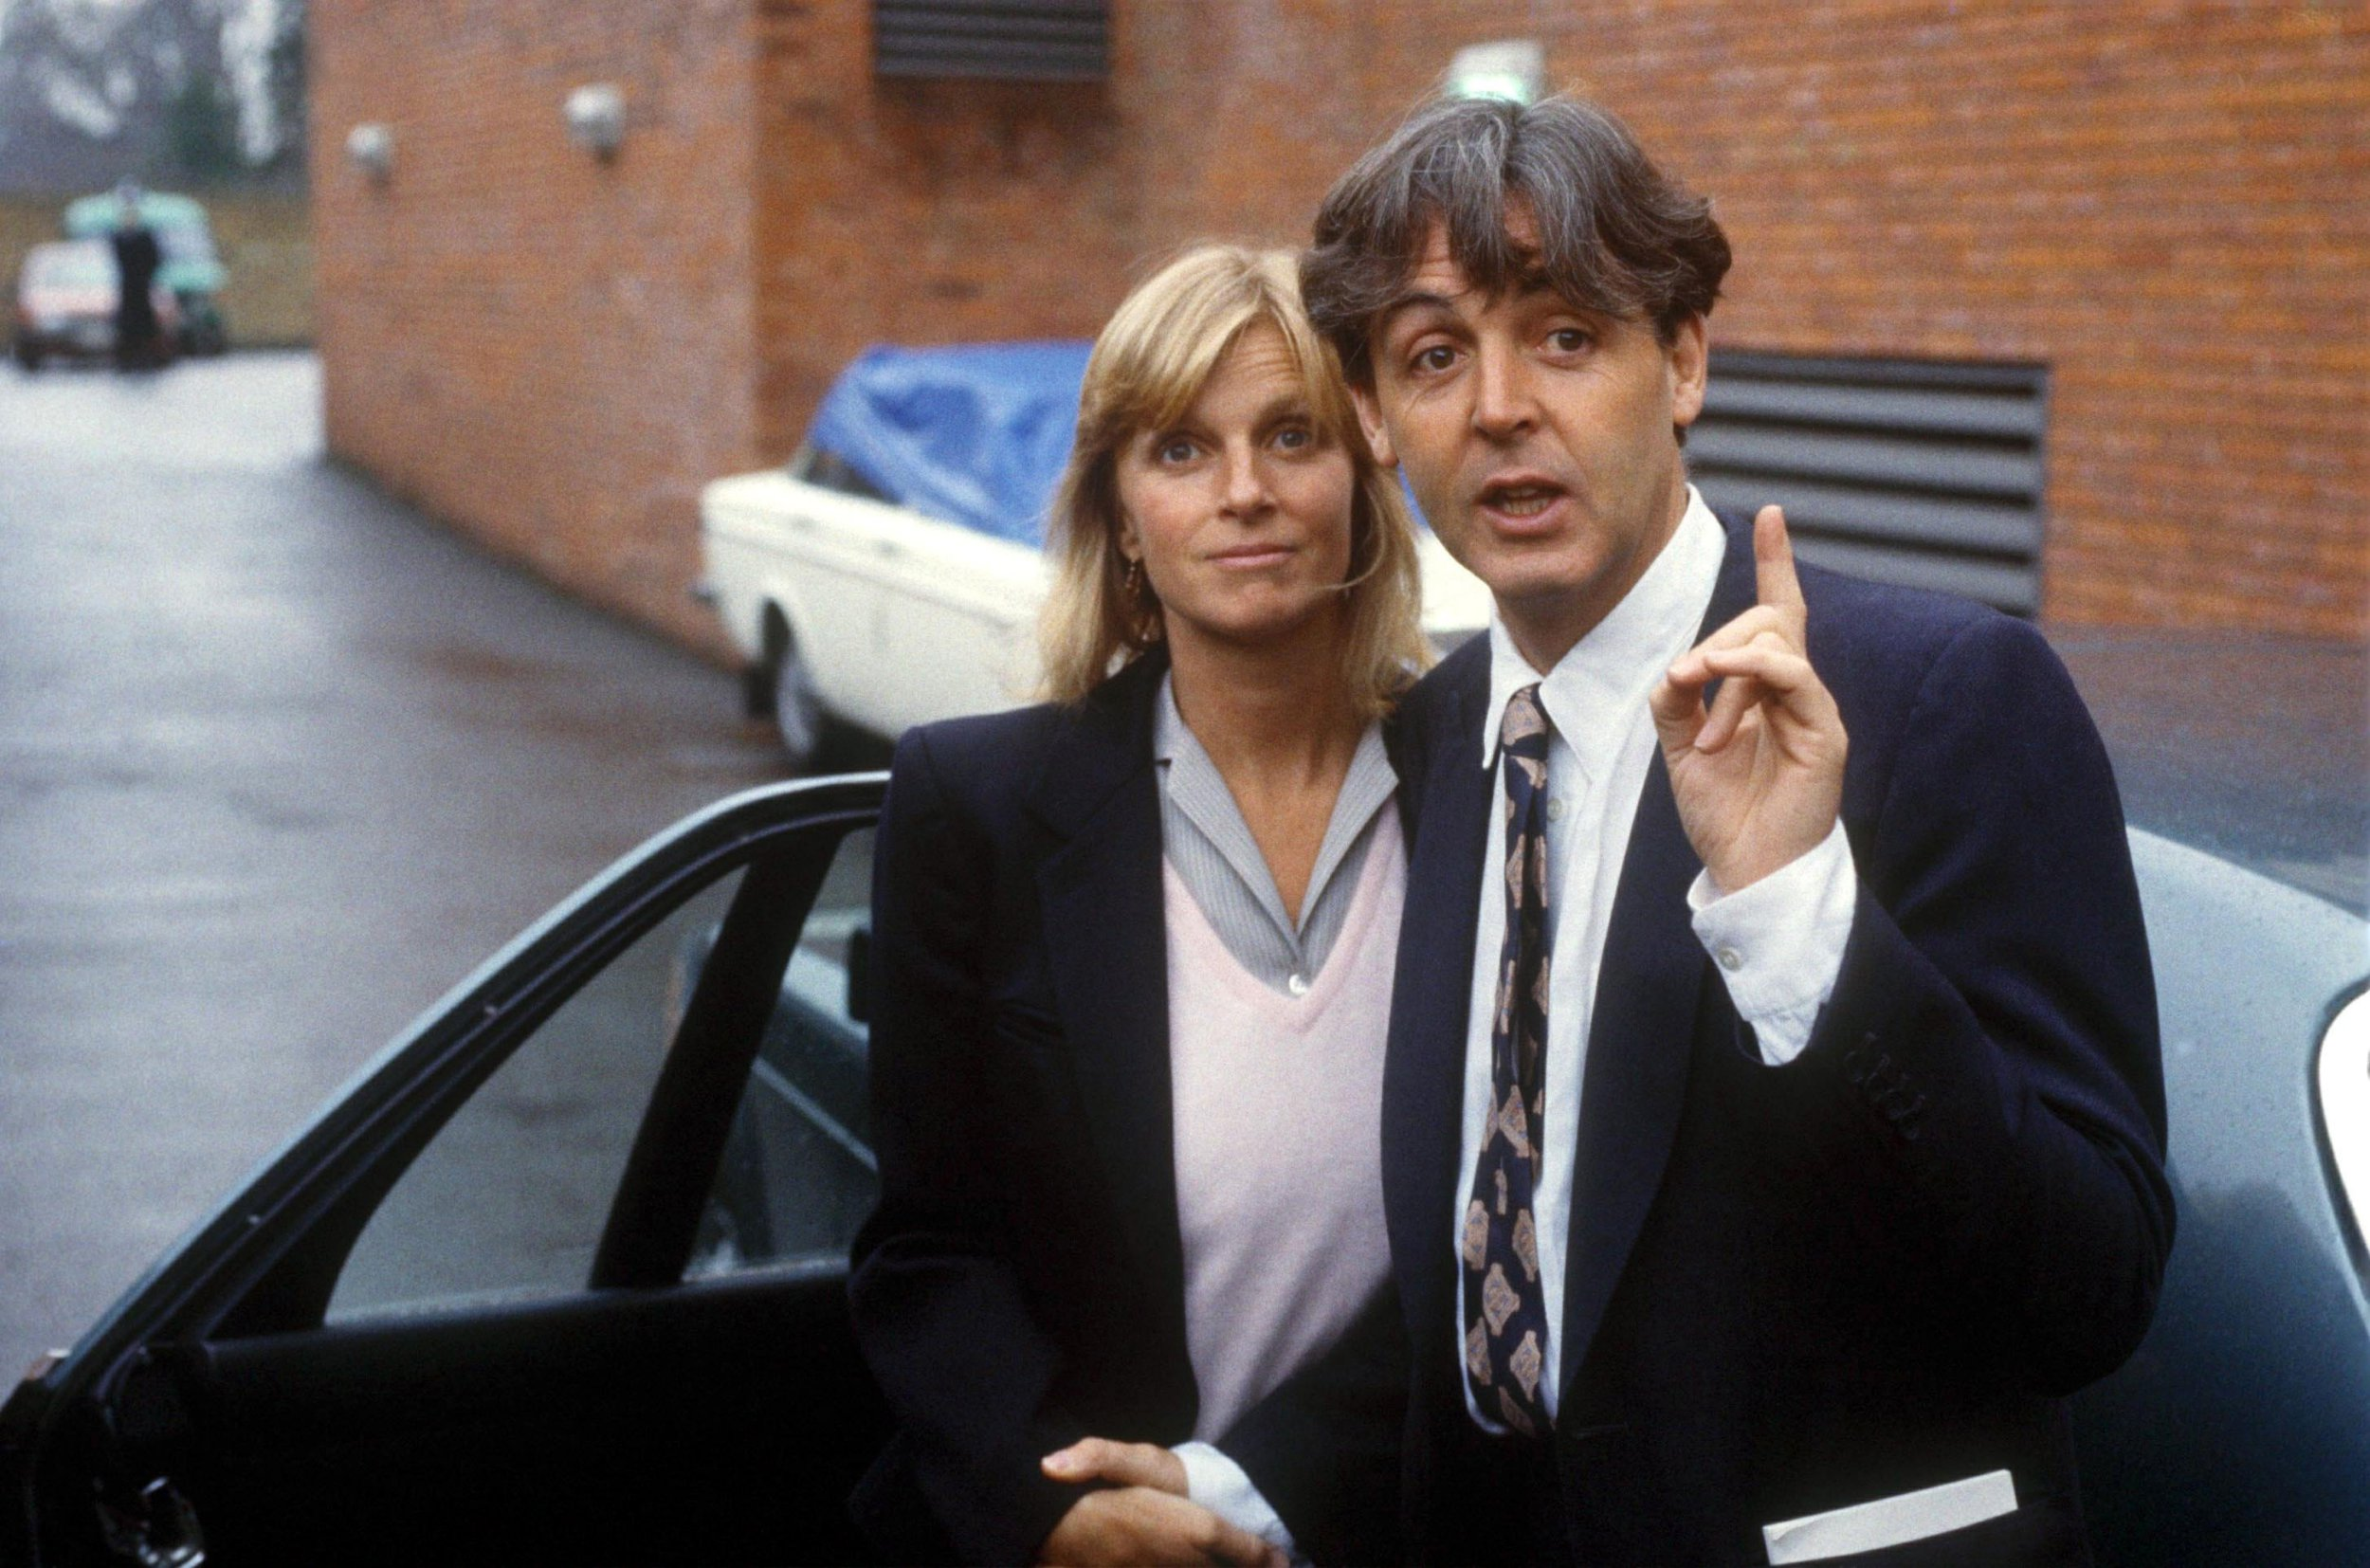 British singer-songwriter Paul McCartney and his wife, Linda, at Middlesex Magistrates Court, Uxbridge, after they appeared on charges of customs evasion of cannabis at Heathrow Airport on their return from Barbados, 24th January 1984. The couple were fined seventy-five pounds after pleading guilty. (Photo by Bryn Colton/Getty Images)